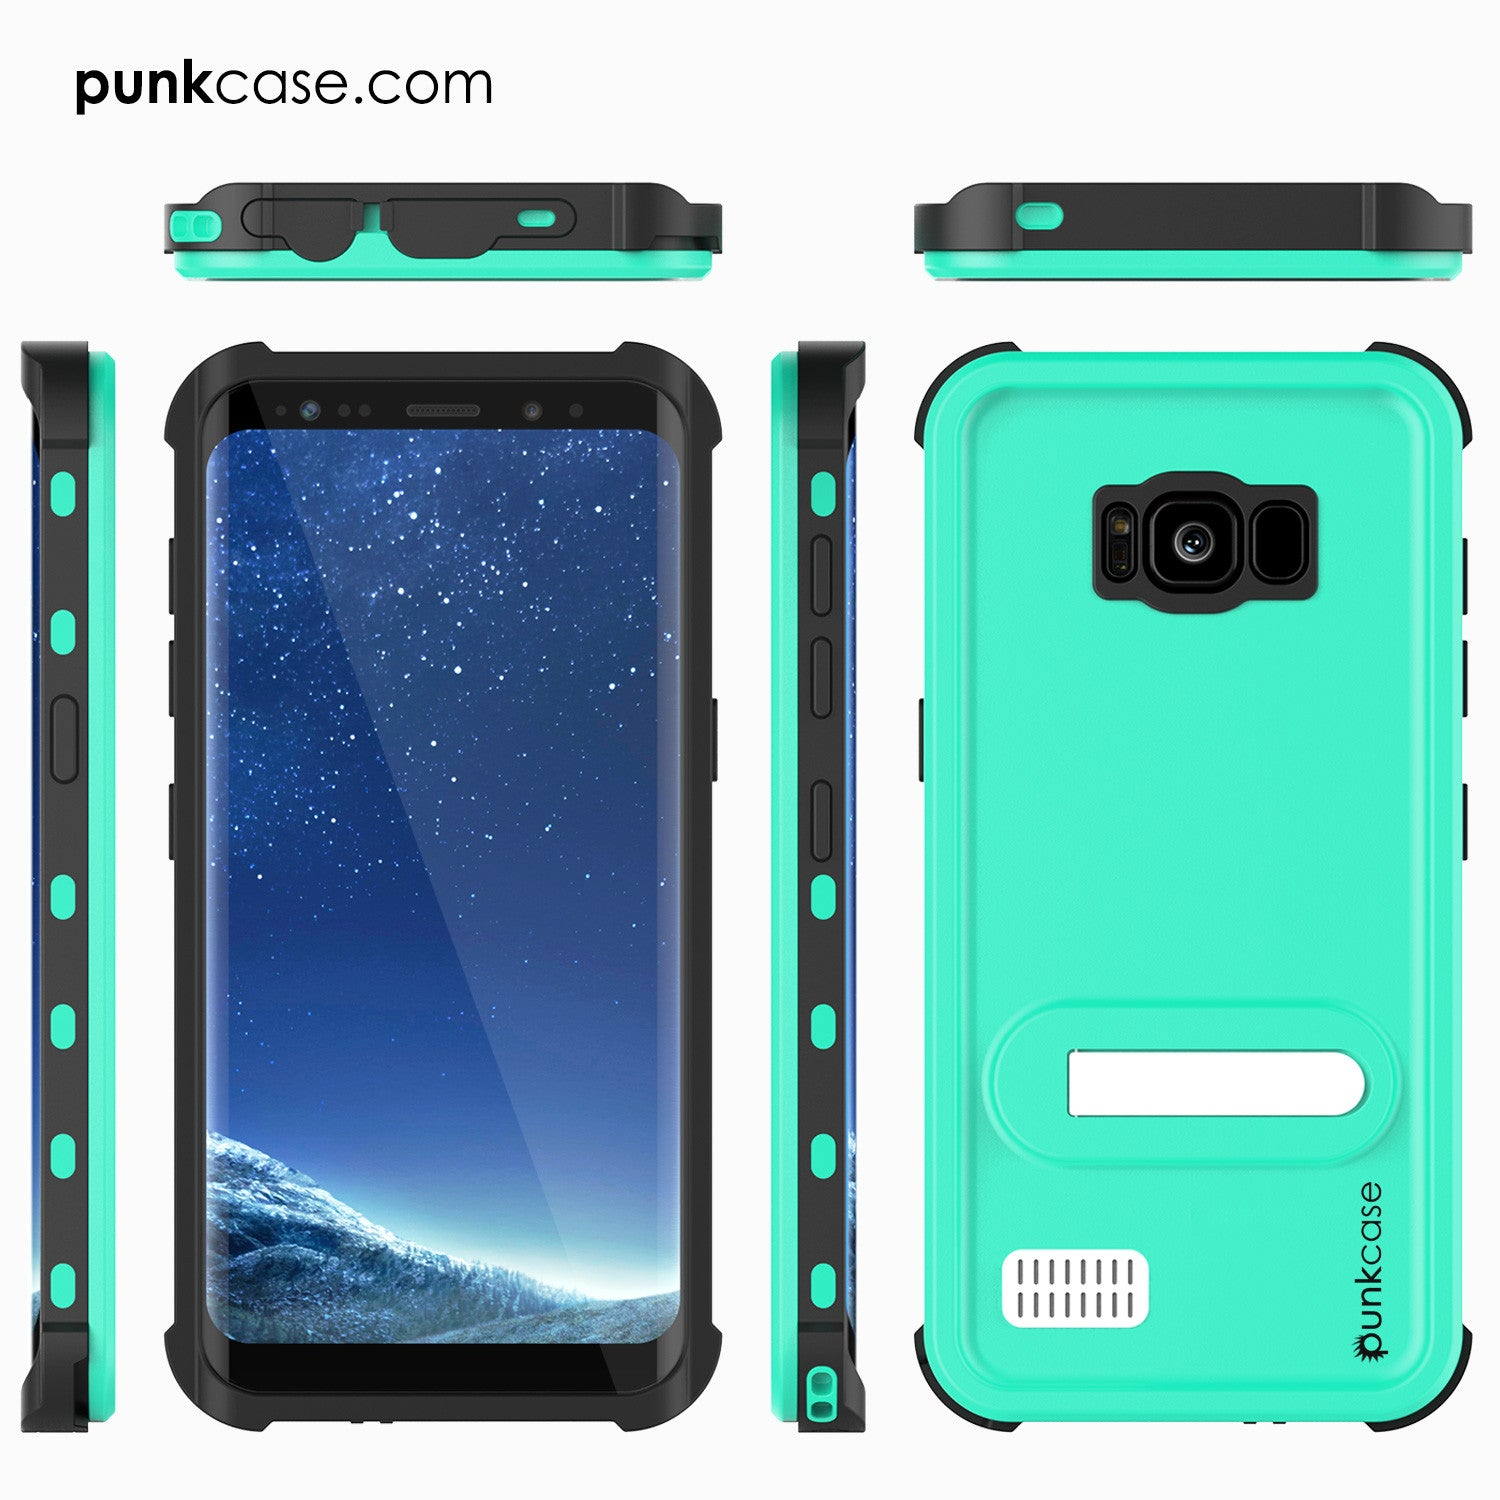 Galaxy S8 Plus Waterproof Case, Punkcase [KickStud Series] [Slim Fit] [IP68 Certified] [Shockproof] [Snowproof] Armor Cover [TEAL]